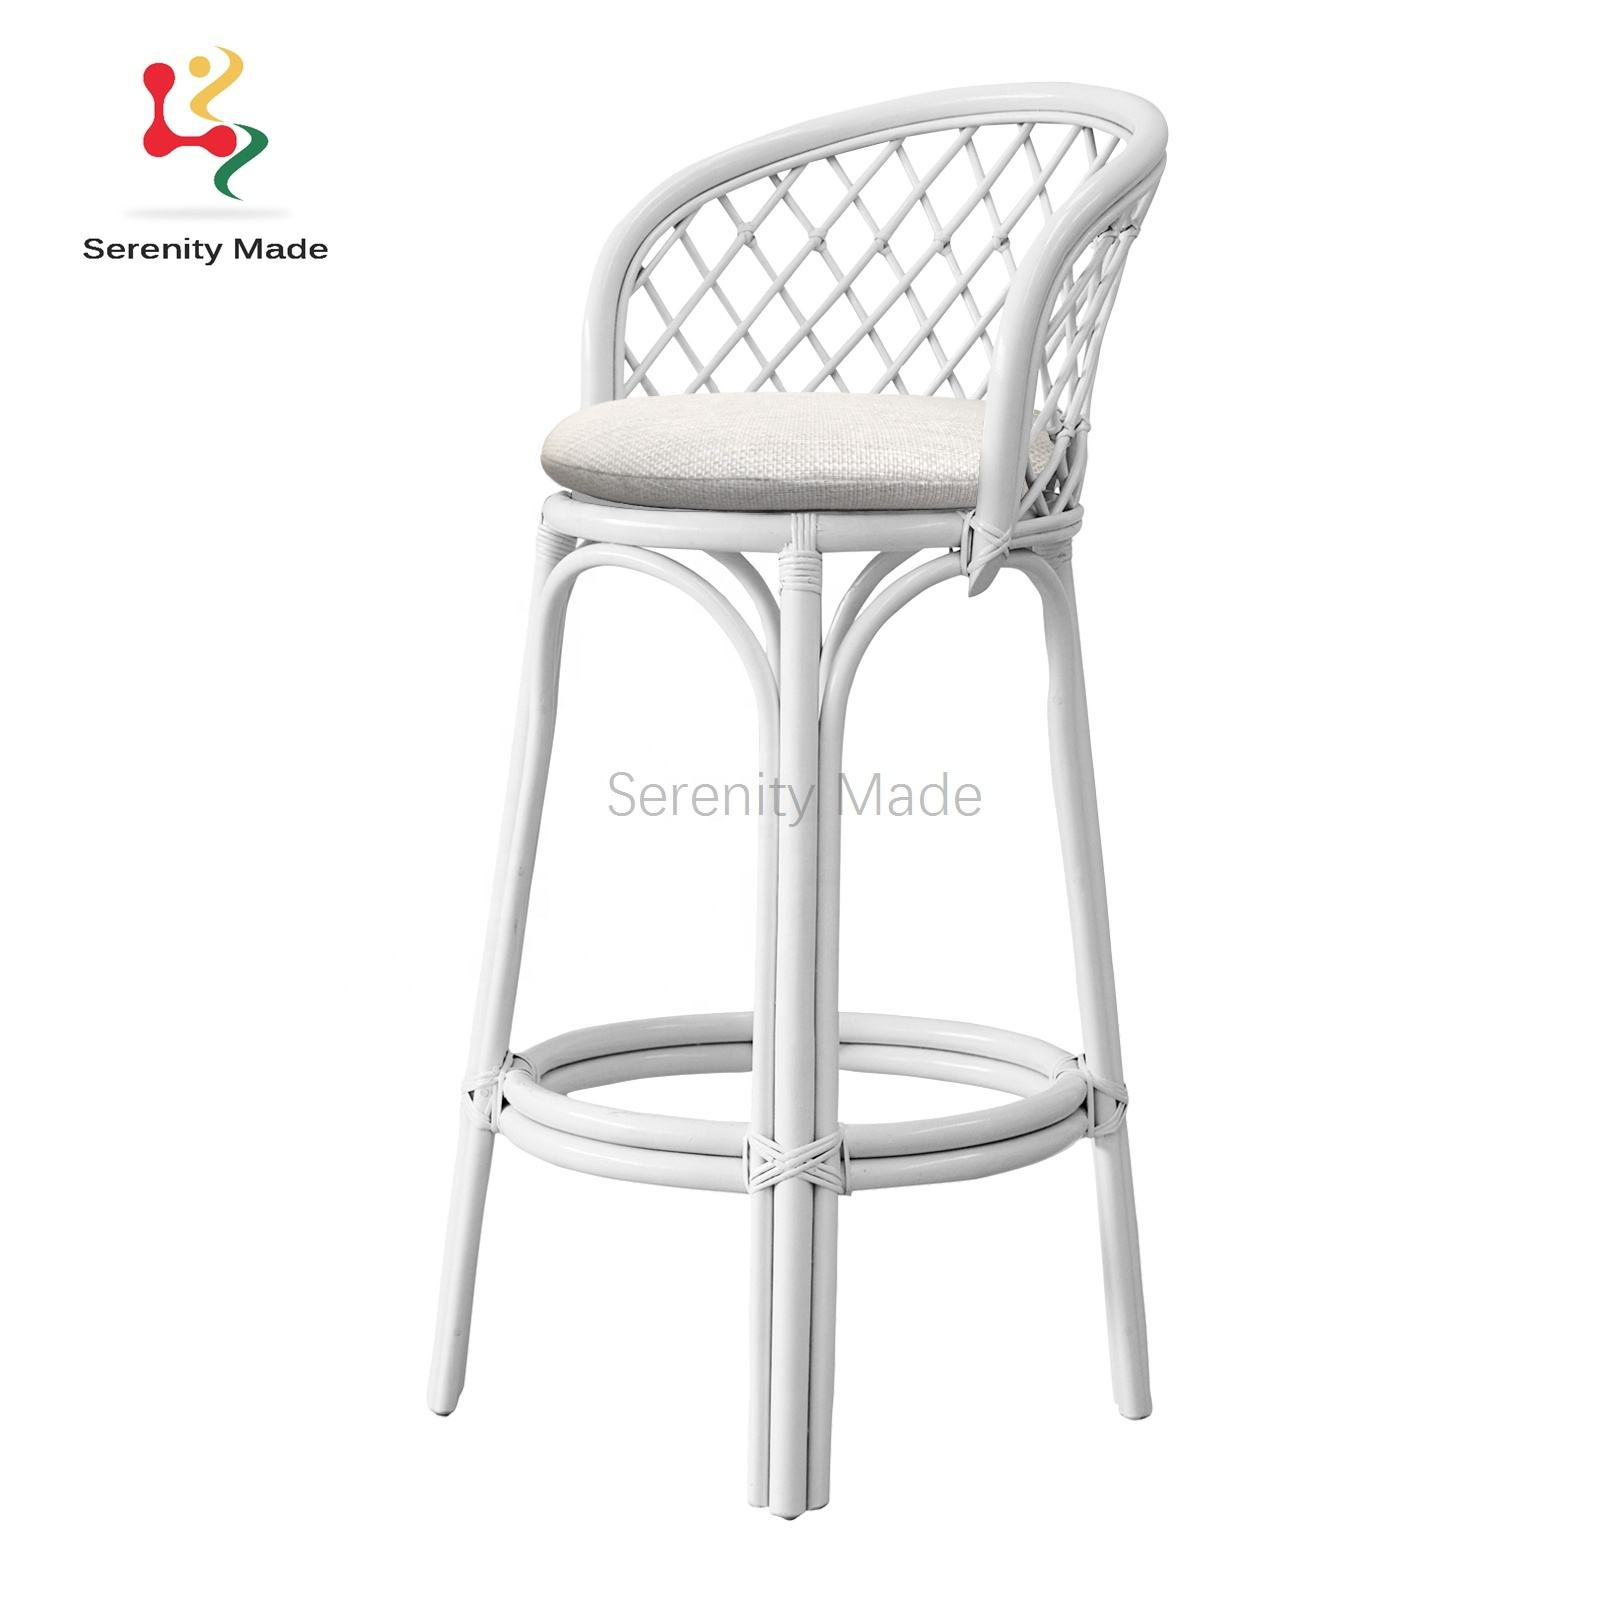 natural rattan wicker outdoor restaurant high bar stools with cushion